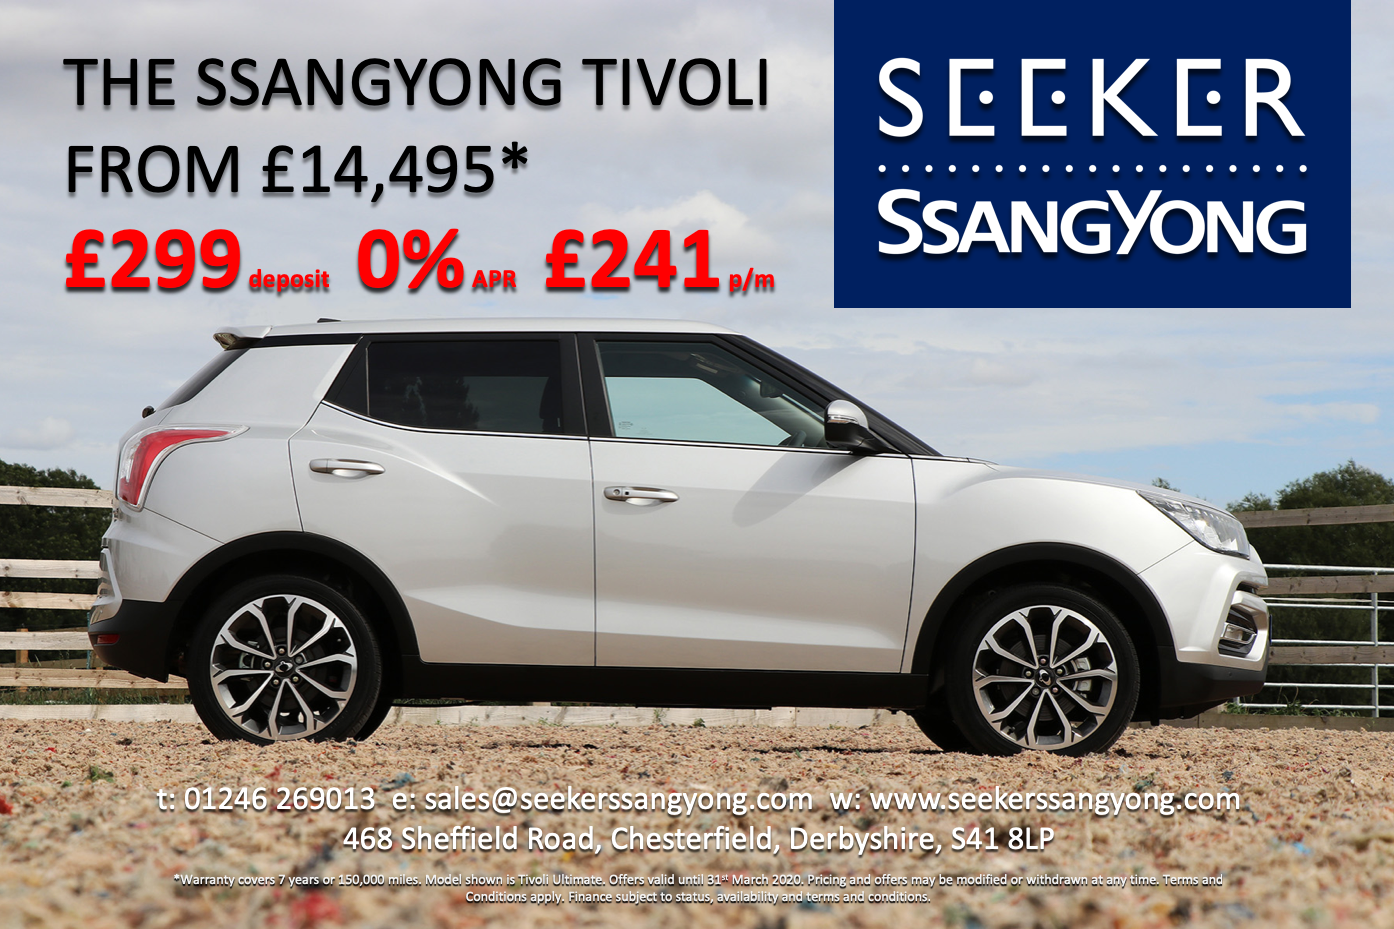 Tivoli finance offers EXCLUSIVE to Seeker SsangYong!